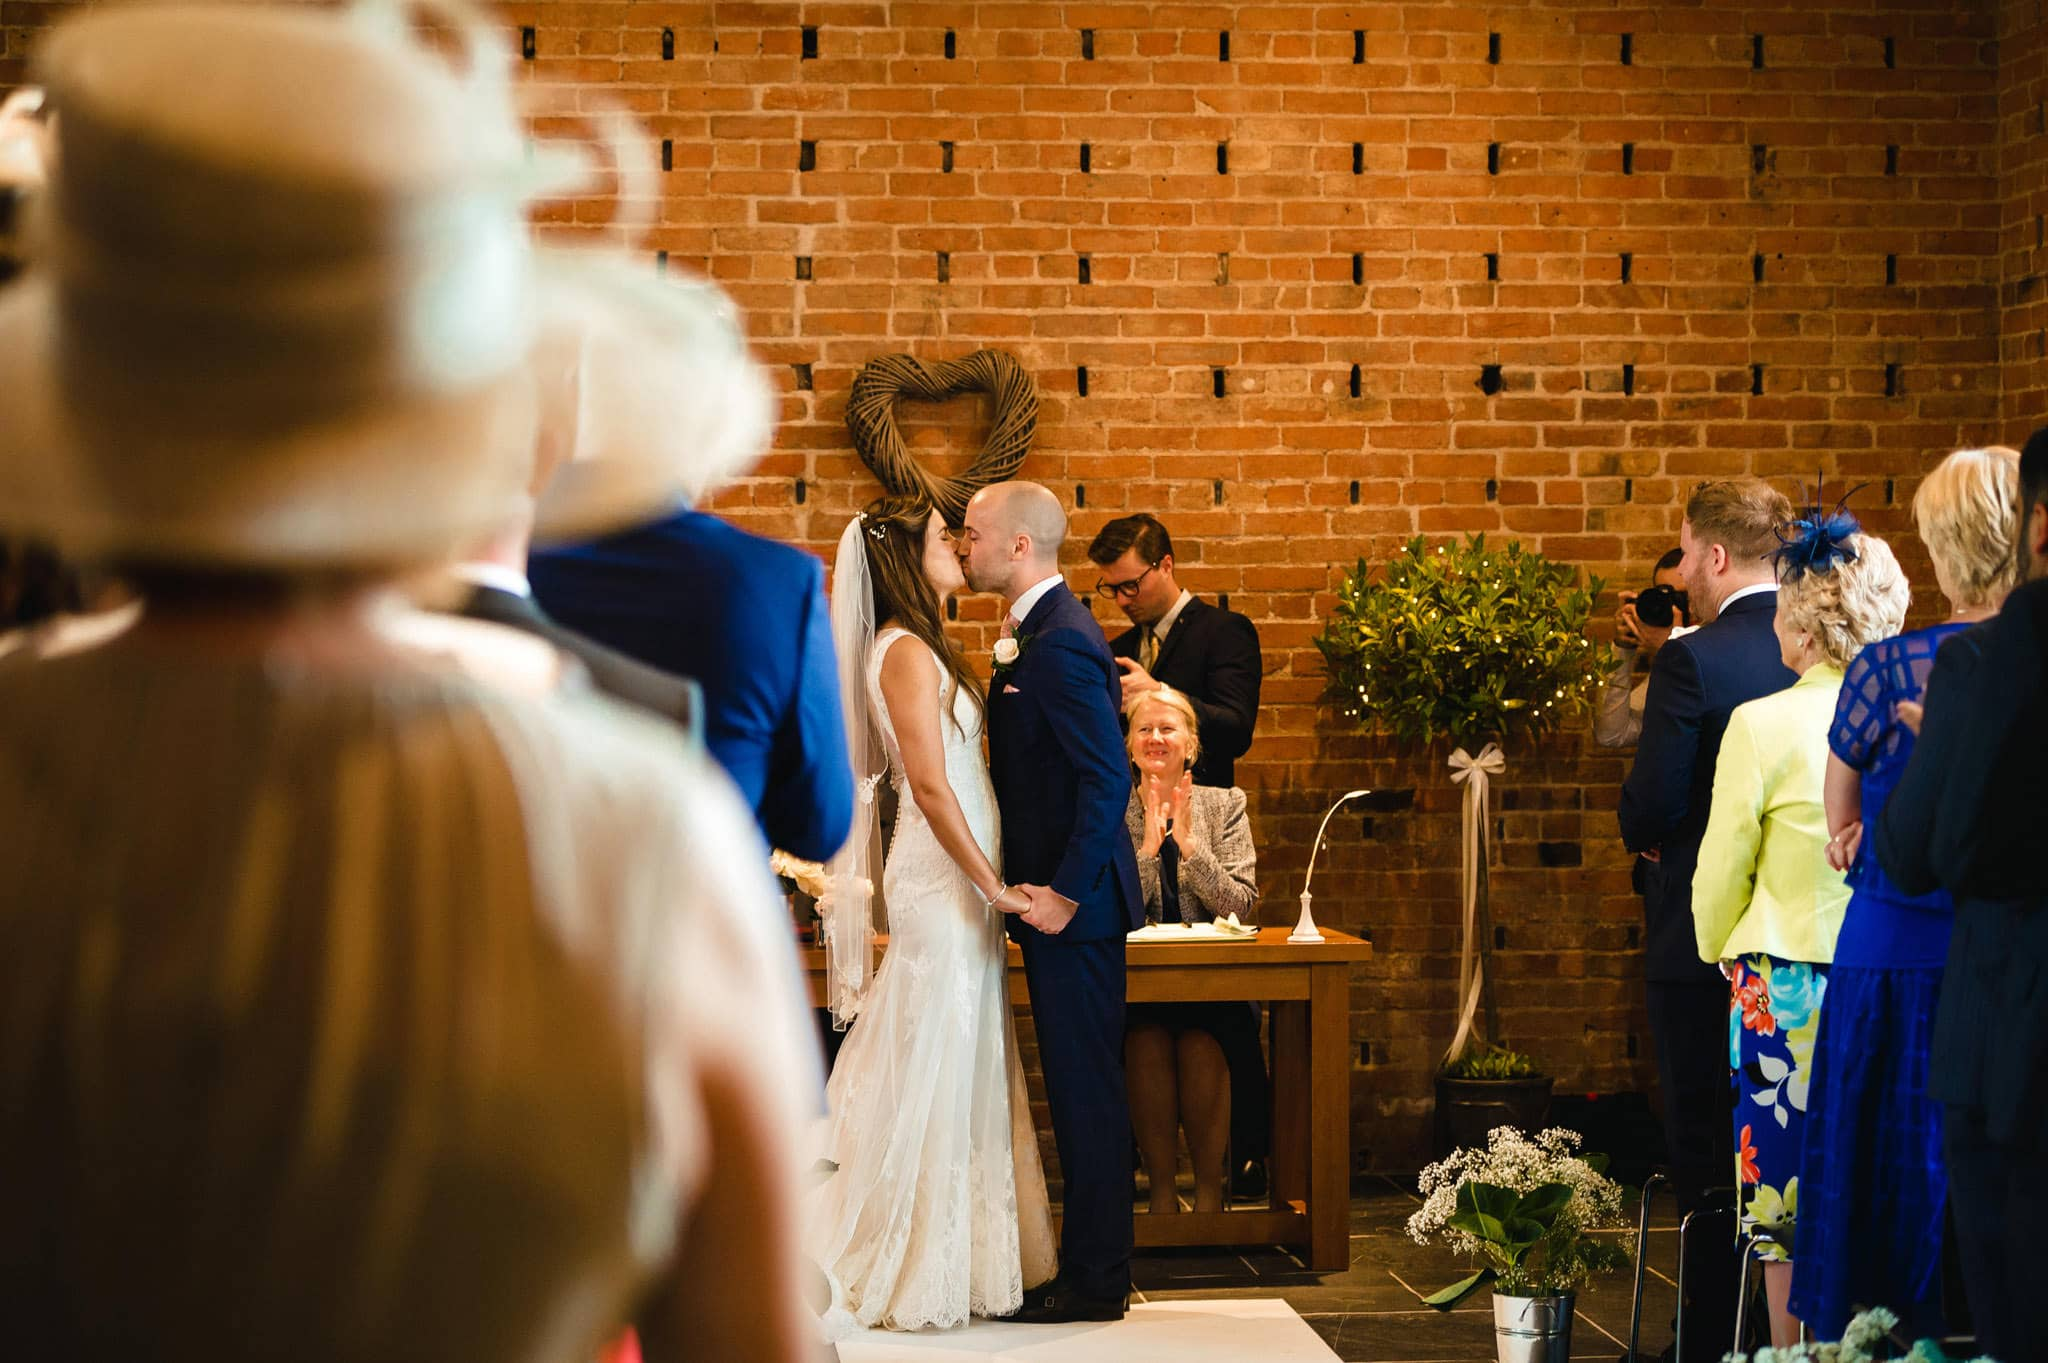 wedding at redhouse barn 77 - Wedding at Redhouse Barn in Stoke Prior, Worcestershire